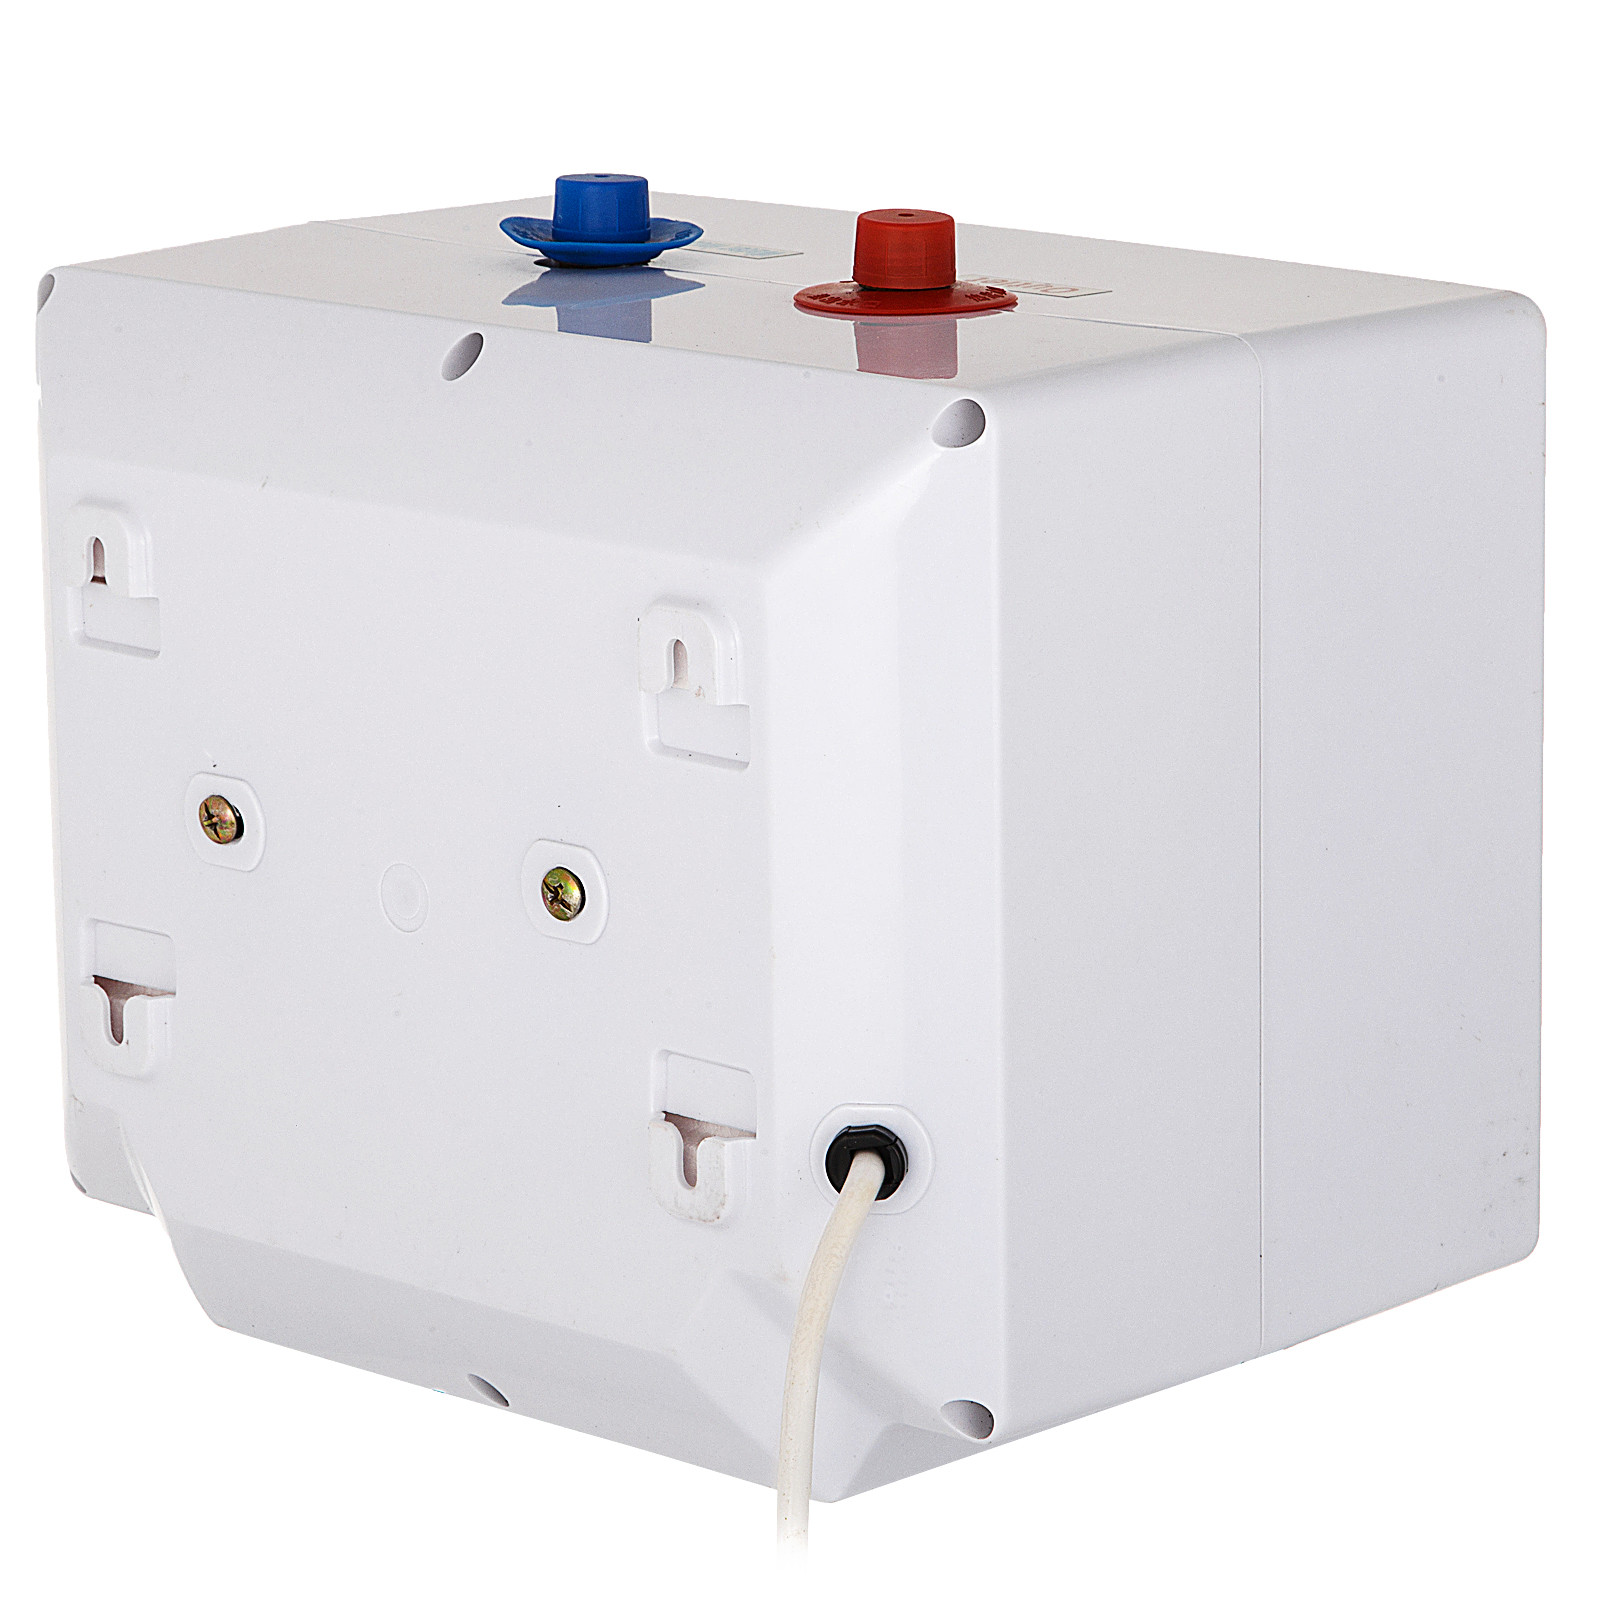 10 120l Electric Hot Water Heater Boiler Storage Tank Auto